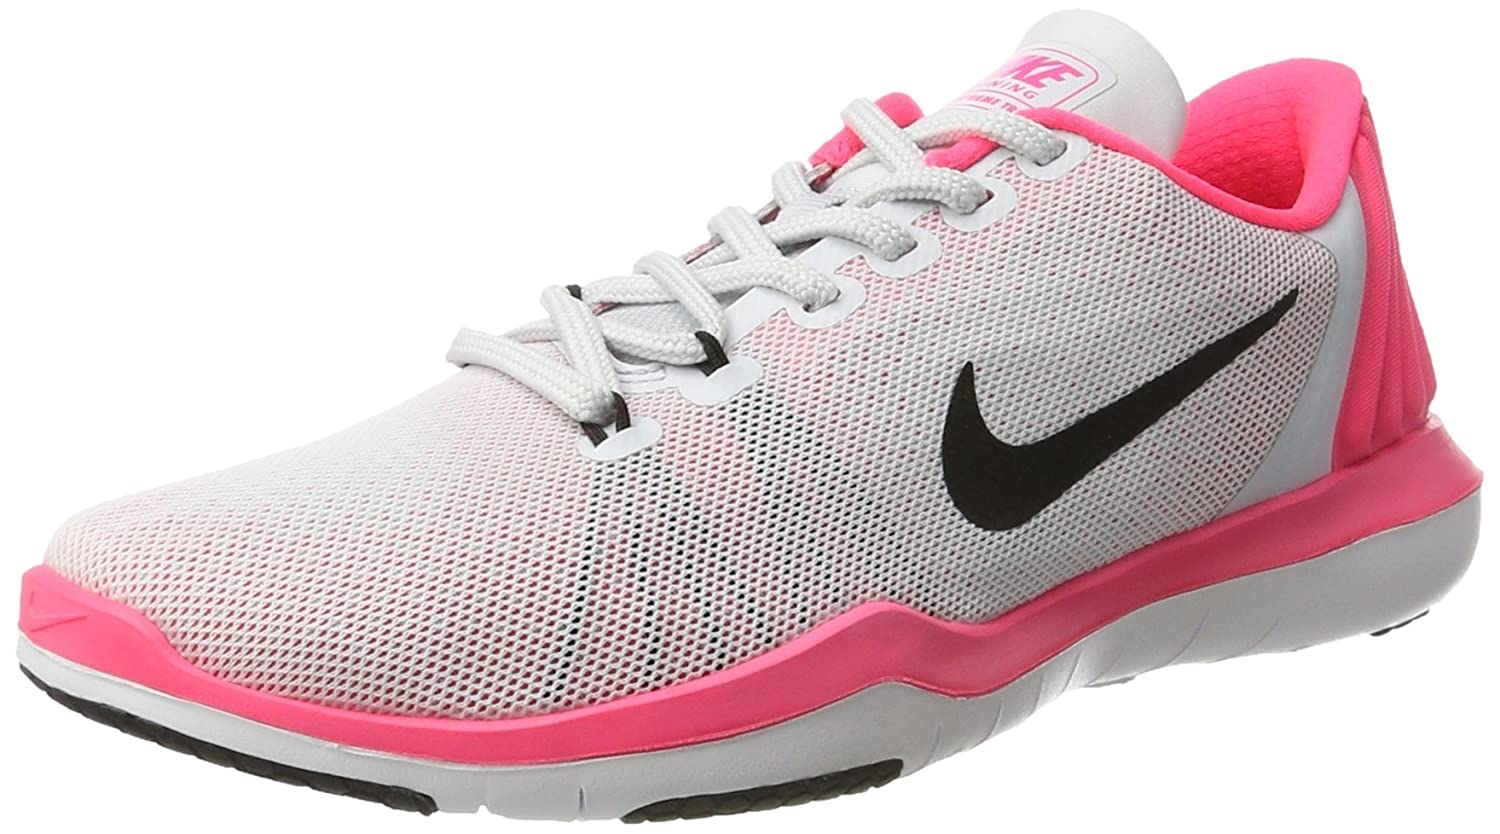 NIKE Women's Flex Supreme TR 5 Cross Training Shoe B01LPORW46 9.5 B(M) US|Pure Platinum/Black/Racer Pink/Wolf Grey